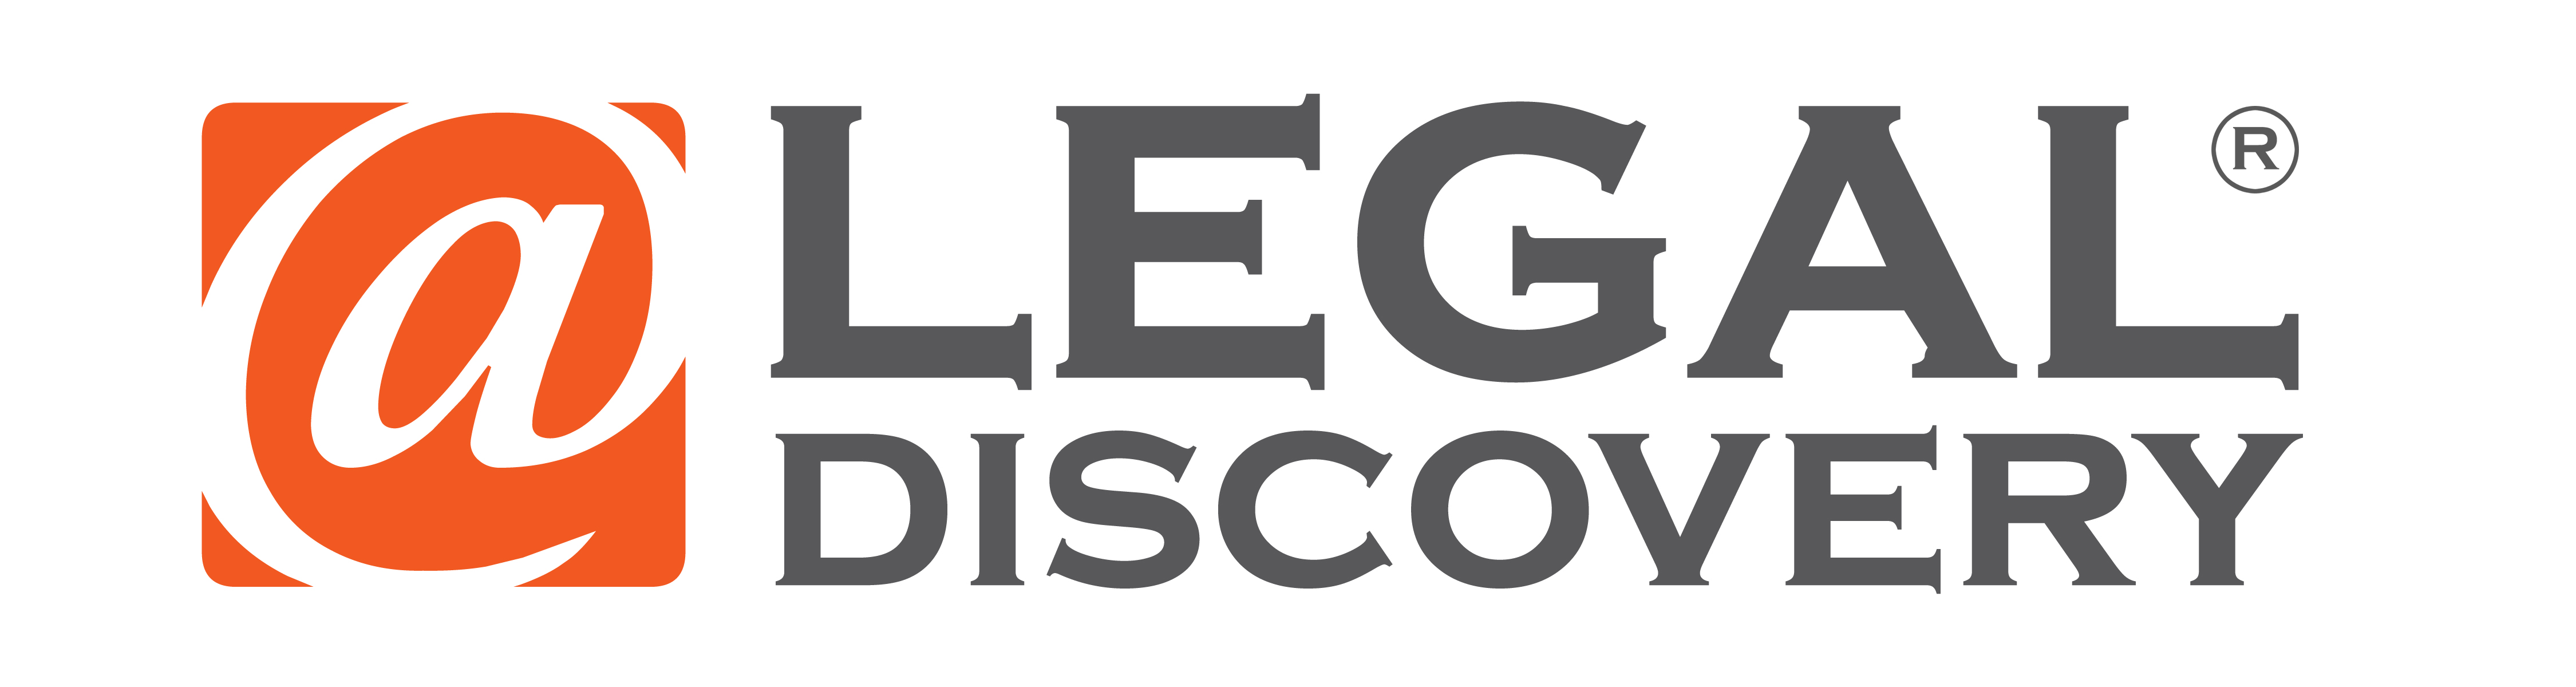 legal_logo_R_white